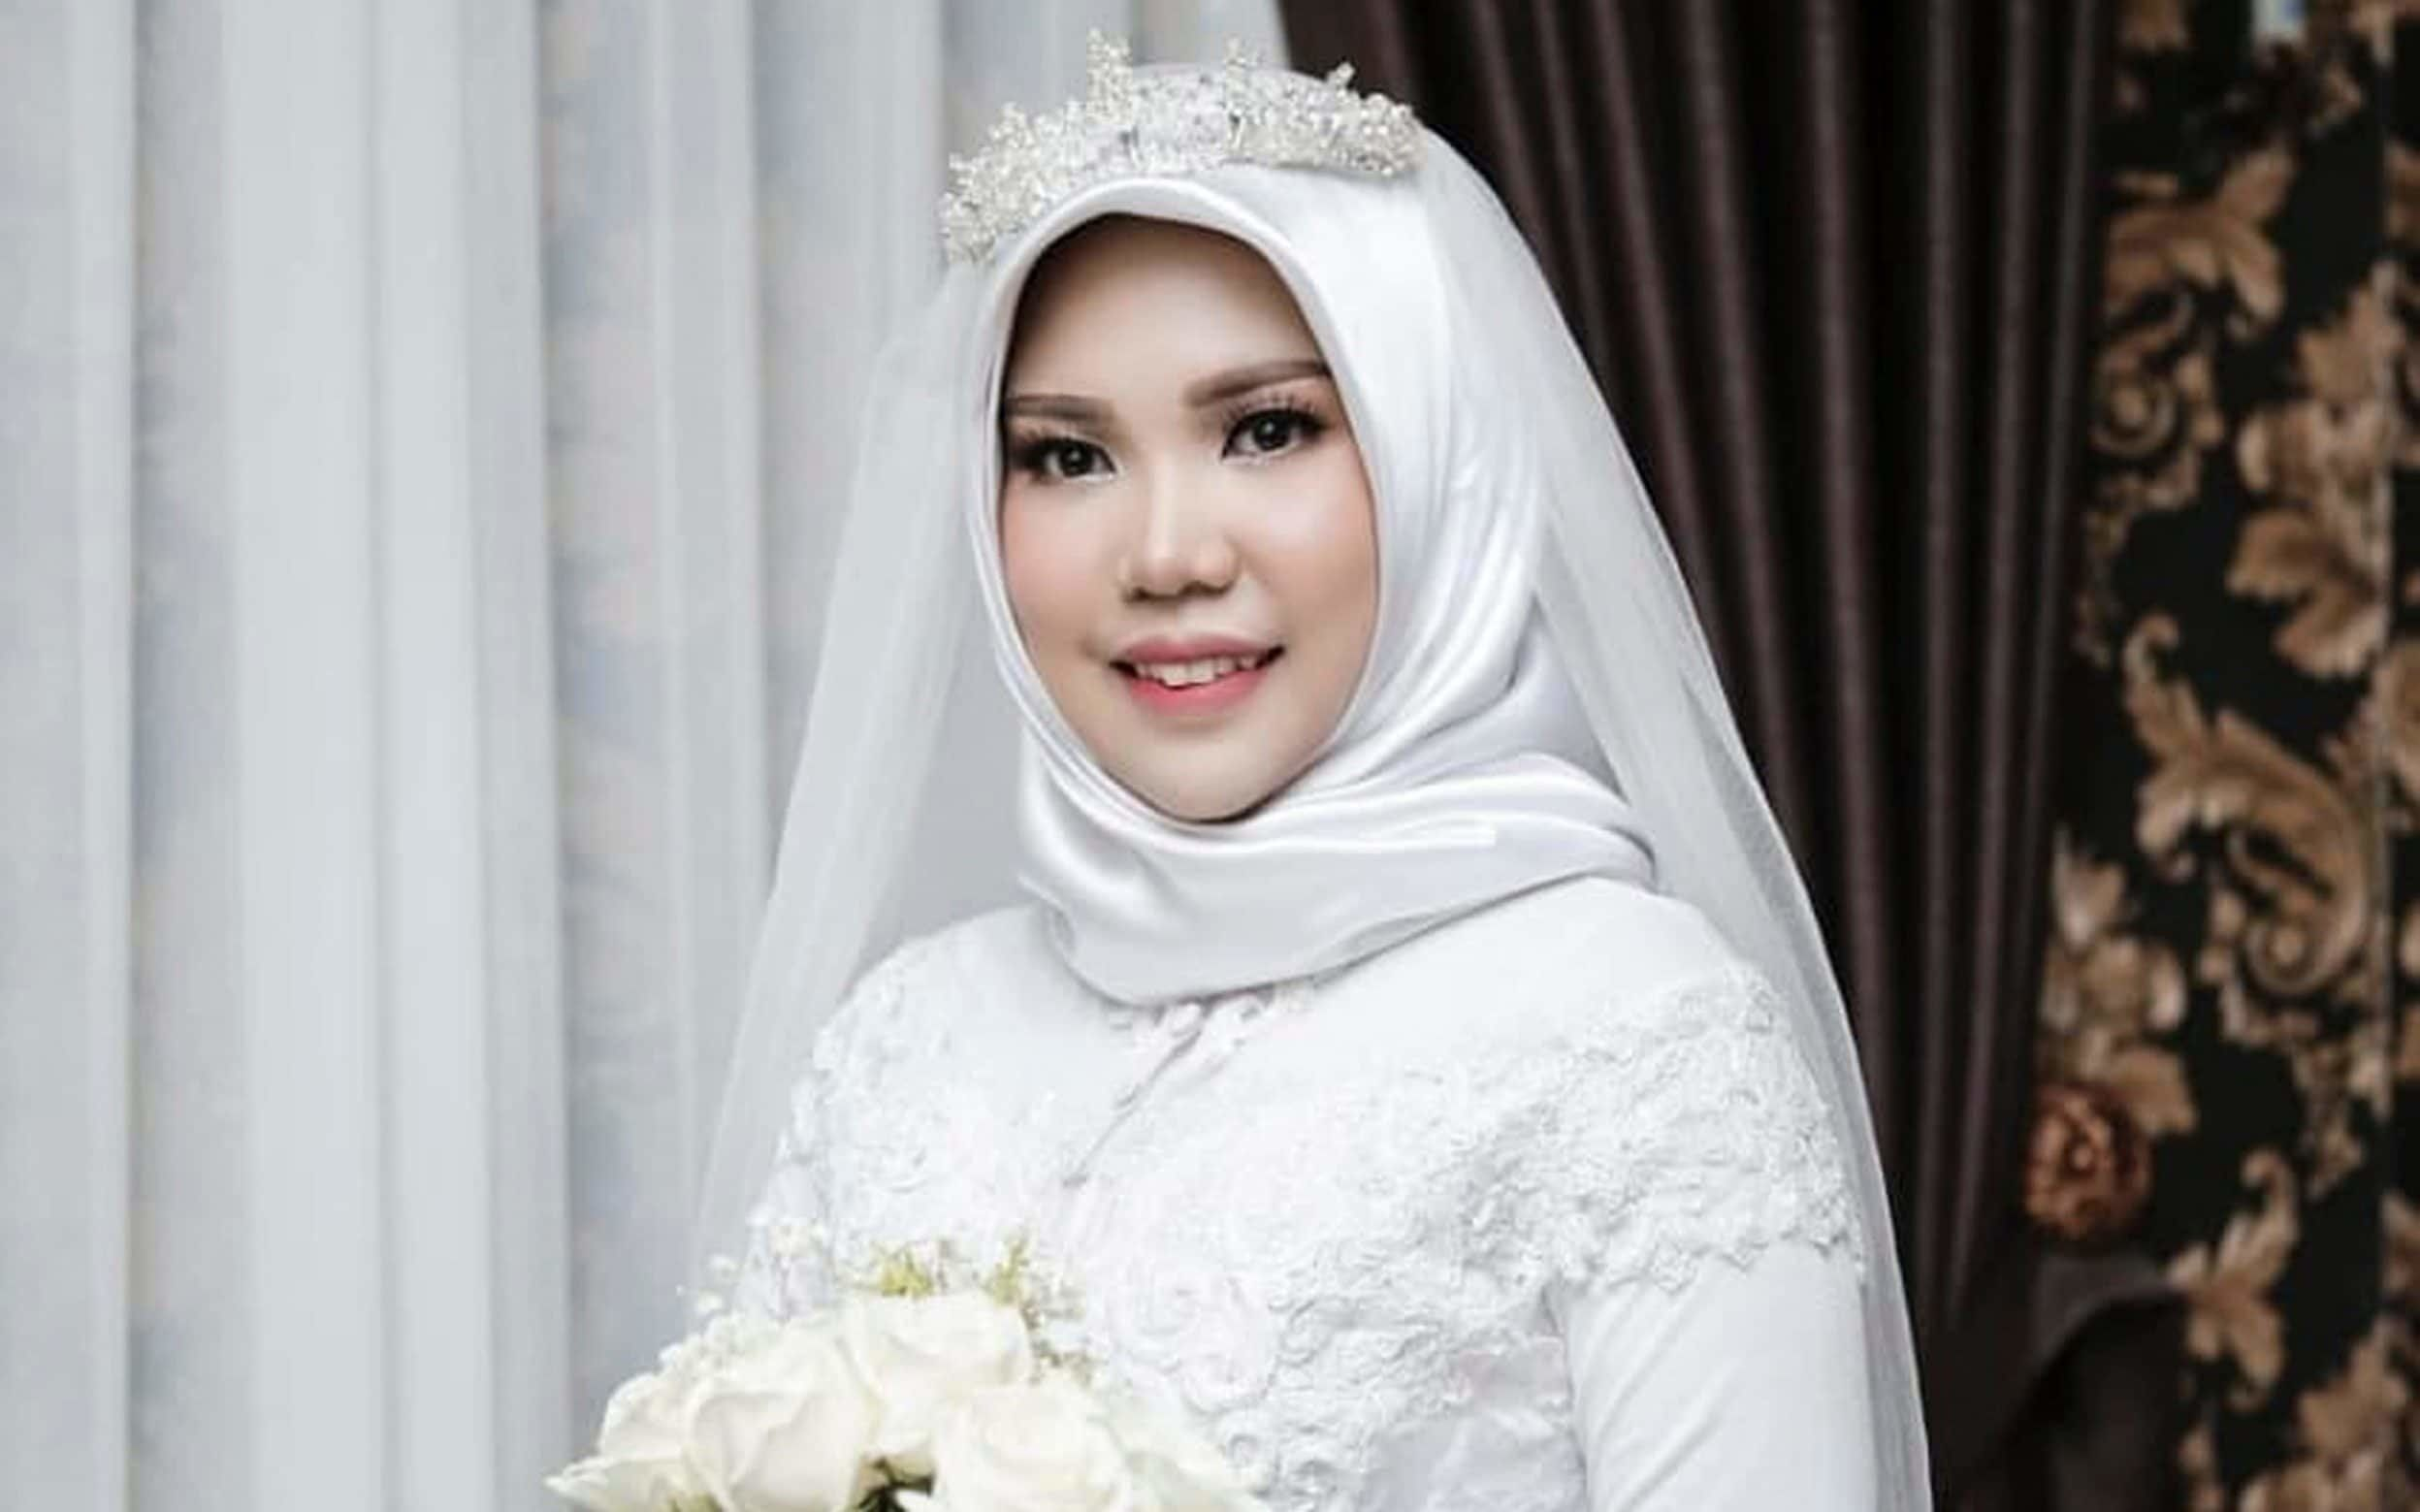 "An Indonesian woman whose fiance died on a Lion Air flight that plunged into the sea was photographed in her wedding dress and professed her love for him on the day they were to have been married. Intan Syari's fiance, Dr Rio Nanda Pratama, was among 189 people who were killed when the Boeing 737 crashed Oct. 29 shortly after taking off from Jakarta. Ms Syari and Dr Pratama, both 26, had planned to get married Sunday. Dr Pratama, who had attended a seminar in Jakarta, was on his way home to Pangkal Pinang for the wedding. Ms Syari said Dr Pratama had joked before leaving that if he was late in returning, Ms Syari should take photos in her wedding gown and send them to him. ""We were just joking at that time,"" Ms Syari told The Associated Press on Wednesday. ""He asked me to still wear my wedding gown that he chose for me on our wedding day, put on beautiful makeup and hold a white rose bouquet, take good photos and send them to him."" She said Dr Pratama was her ""first love"" and they started dating 13 years ago. A family of victims of Lion Air flight JT 610 throw a bouquet of flowers during visit to the site of the crash Credit: Ulet Ifansasti/Getty Images On Sunday, she went ahead and took photos in the white wedding gown with a white satin head covering and a white rose bouquet in her hand, surrounded by relatives and friends. ""Although I actually feel grief that I cannot describe, I have to smile for you,"" Syari wrote on Instagram. ""I should not be sad, I have to stay strong as you always say to me, I love you, Rio Nanda Pratama."" Investigators say sensors that help prevent planes from stalling were replaced on the Lion Air plane the day before its fatal flight and may have compounded other problems with the aircraft. Body parts are still being recovered and searchers are continuing to hunt for the cockpit voice recorder. Lion Air is one of Indonesia's youngest airlines but has grown rapidly, flying to dozens of domestic and international destinations."